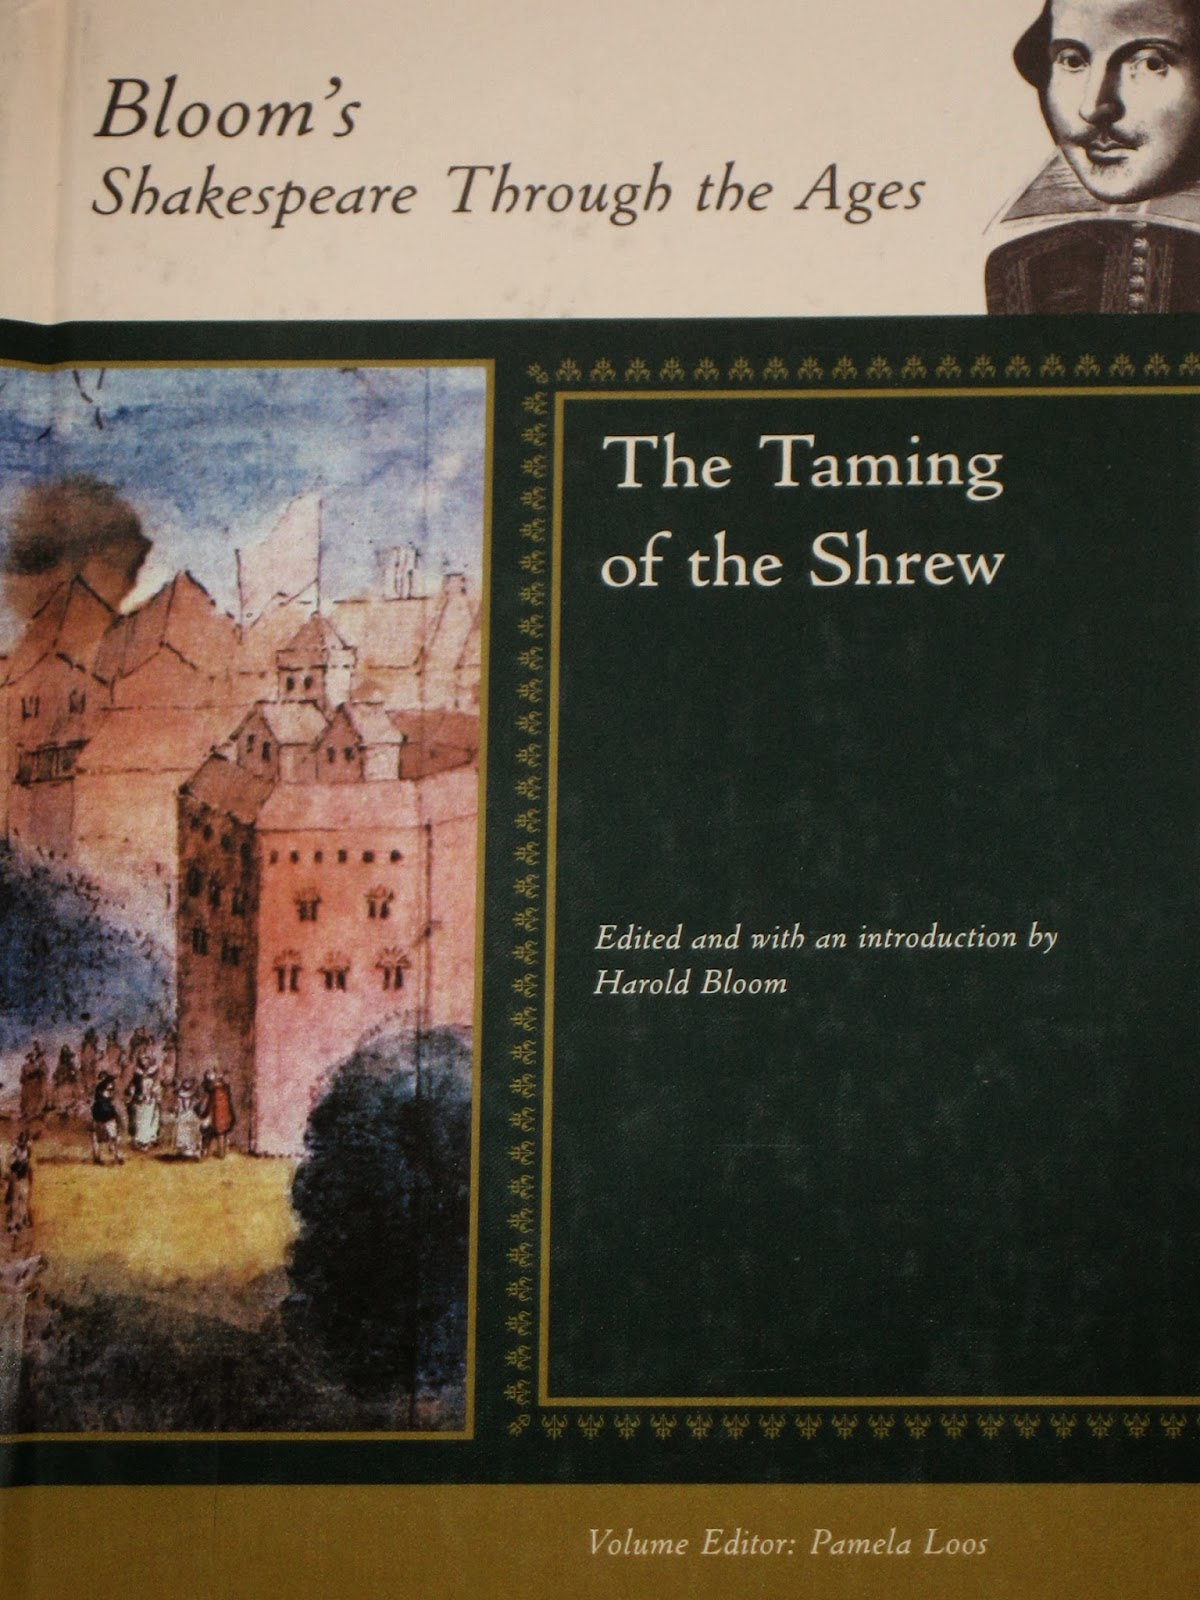 mostly shakespeare but also some occasional nonsense the taming of the shrew edited and an introduction by harold bloom this is a volume in the bloom s shakespeare through the ages series